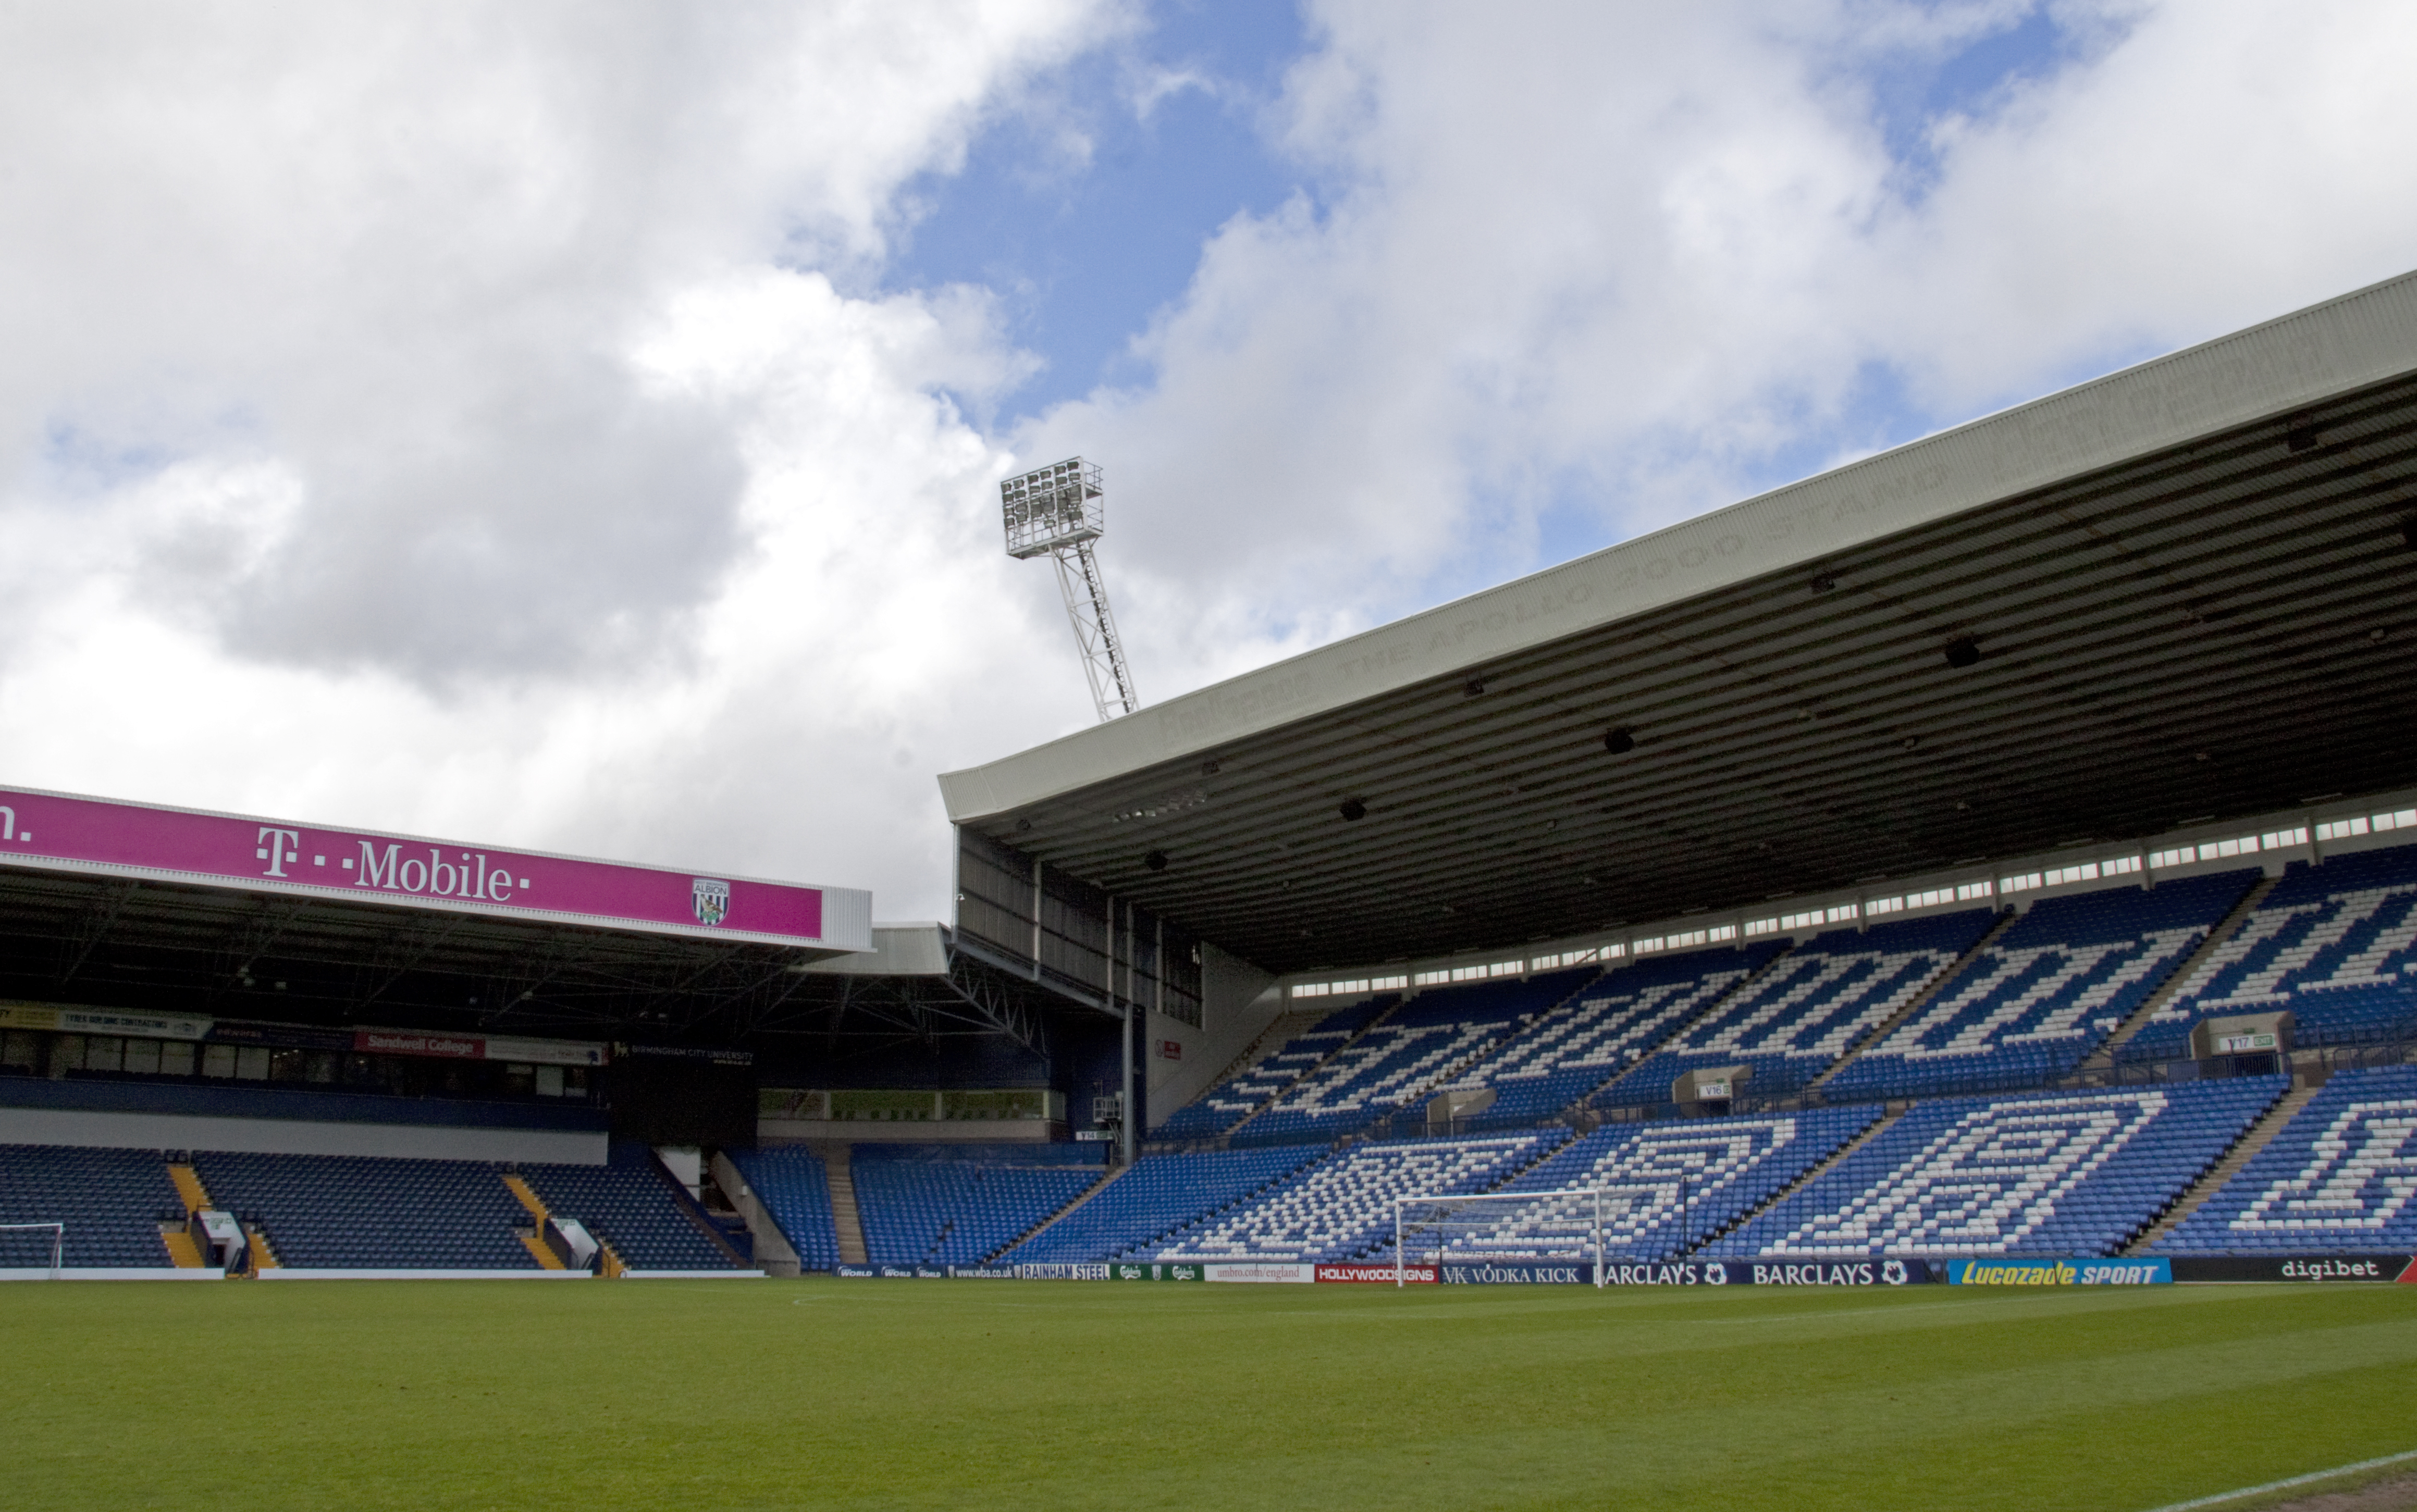 File:The Hawthorns pitch level.jpg - Wikimedia Commons